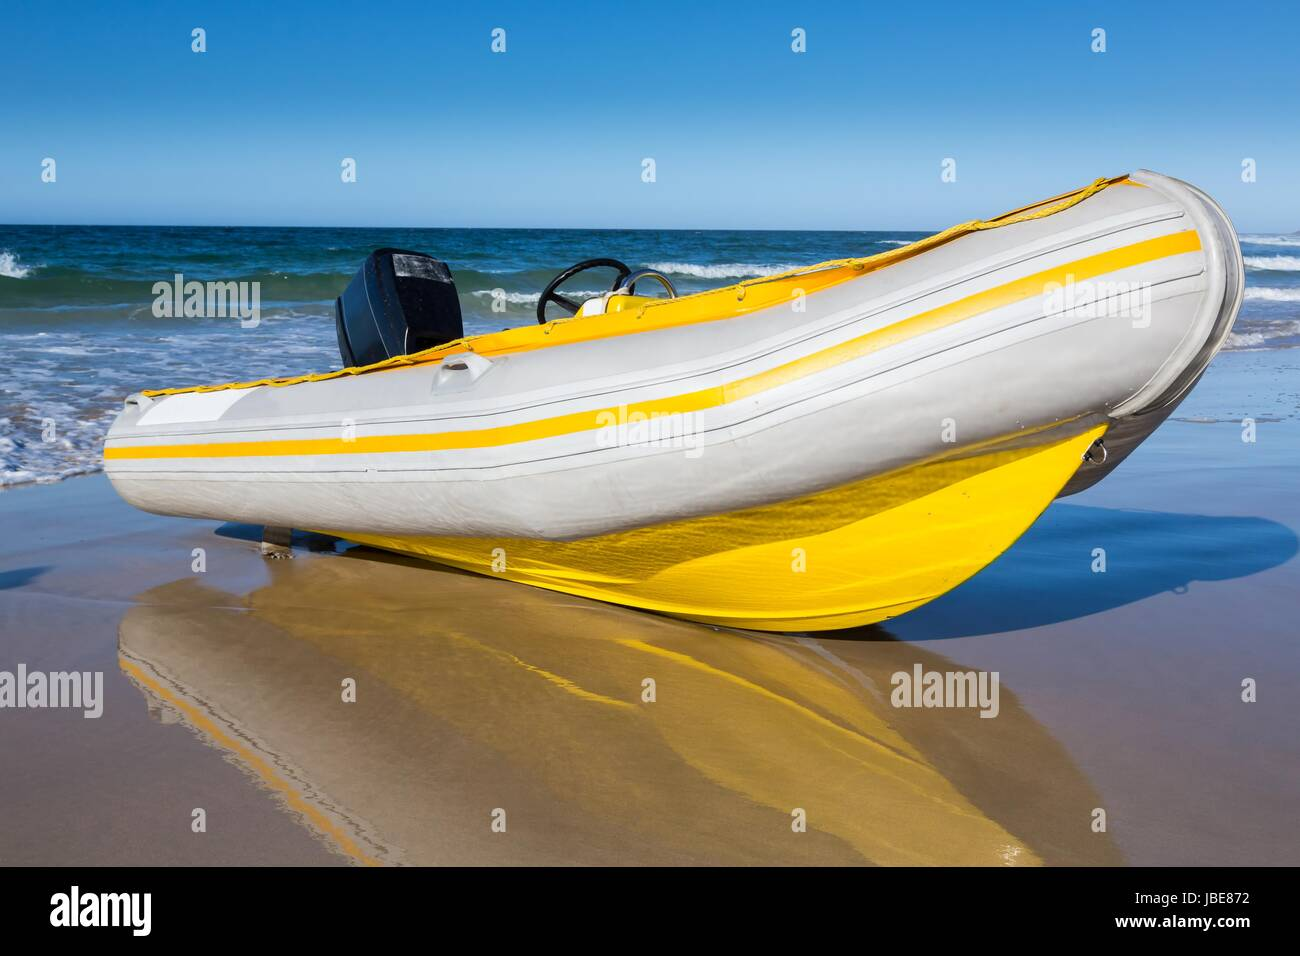 Stock Photo   Yellow And White Rubber Duck Inflatable Boat On The Sandy  Beach